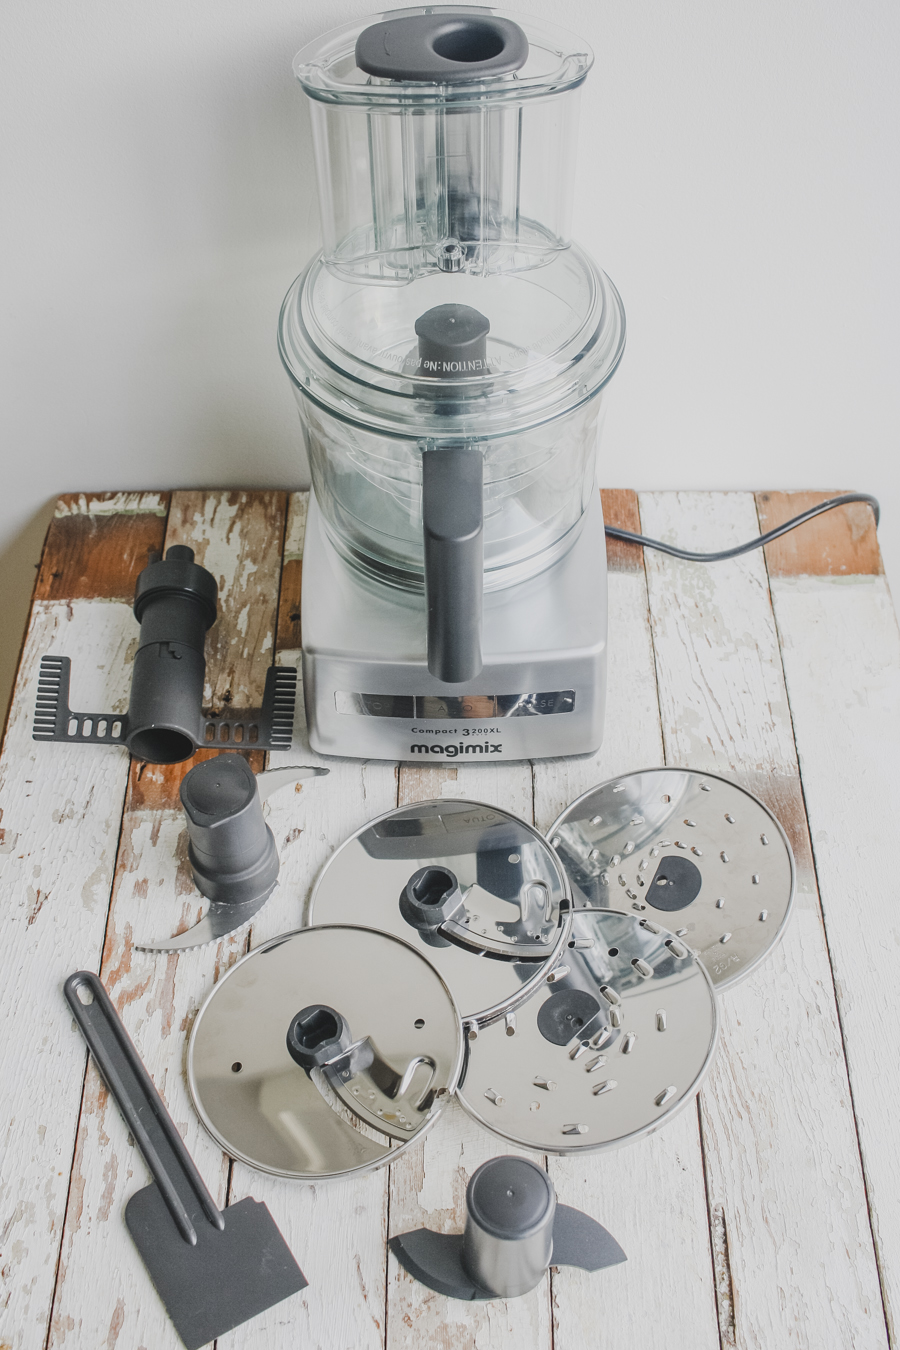 Food Processor Review: Magimix Compact 3200 XL on feedingboys.co.uk